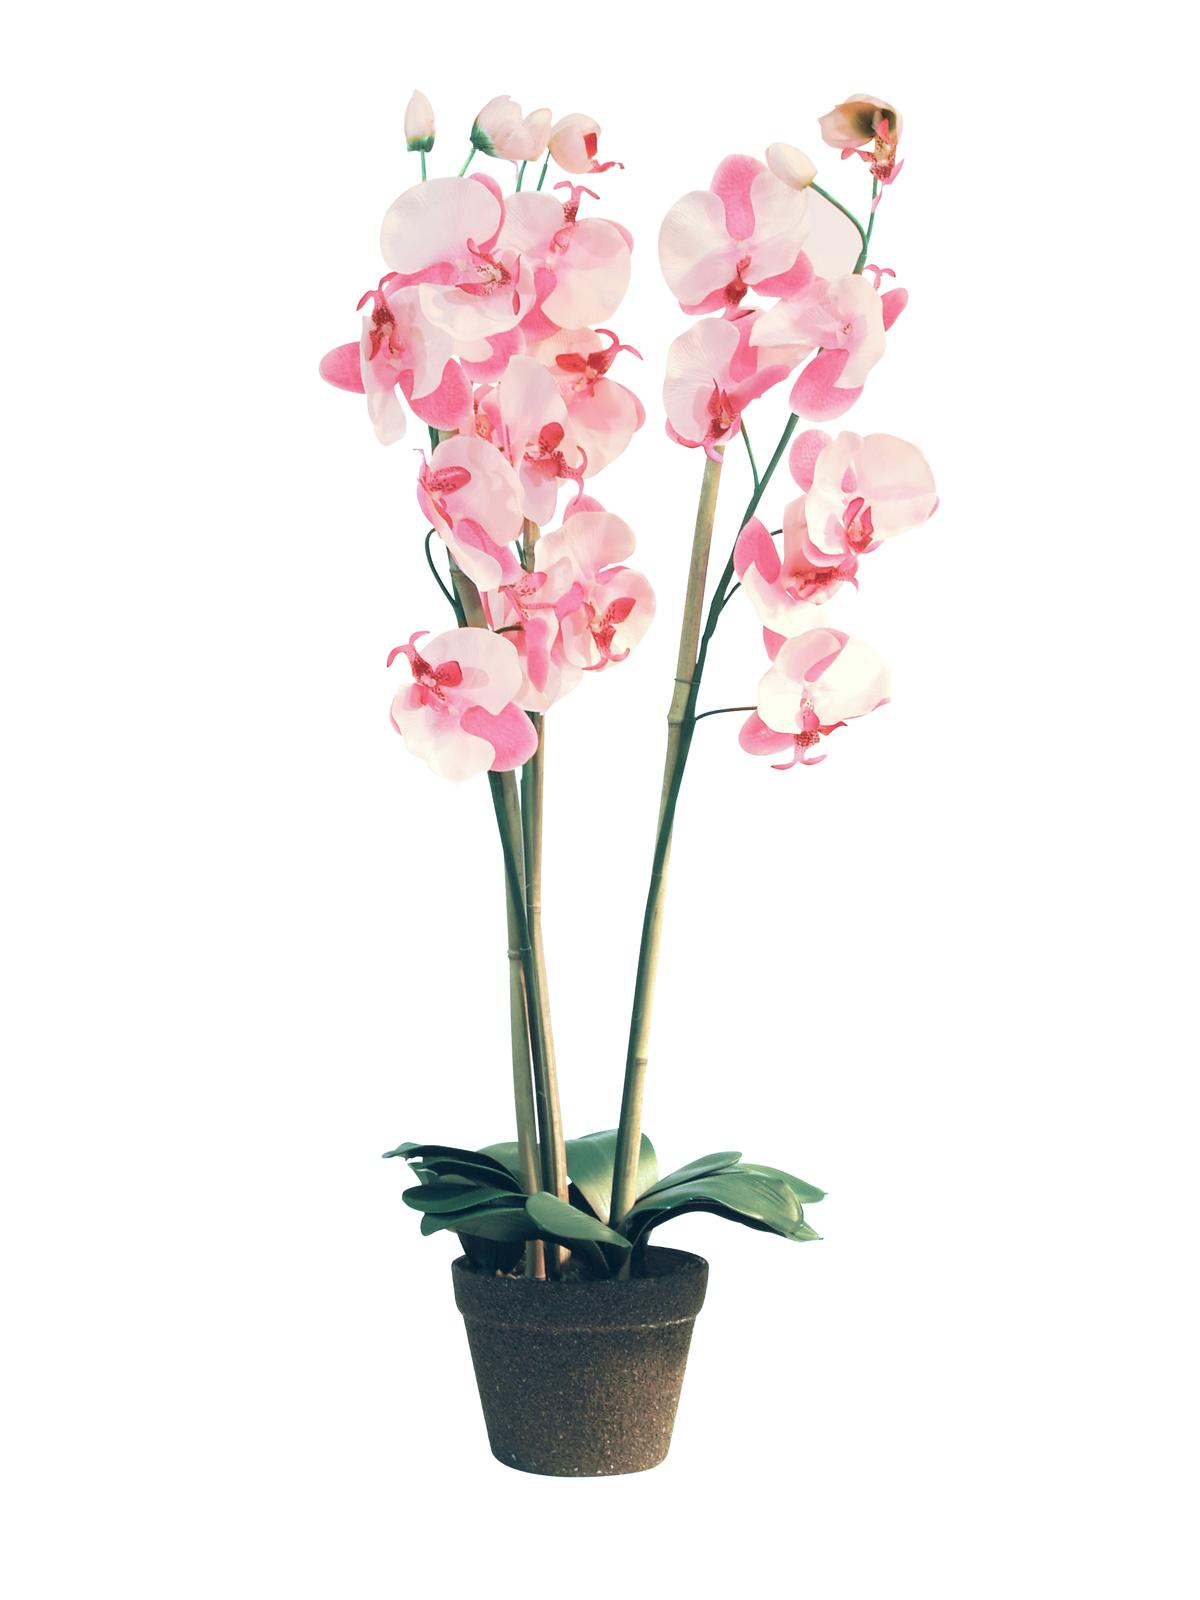 EUROPALMS pianta artificiale Orchidea, rosa, 80cm